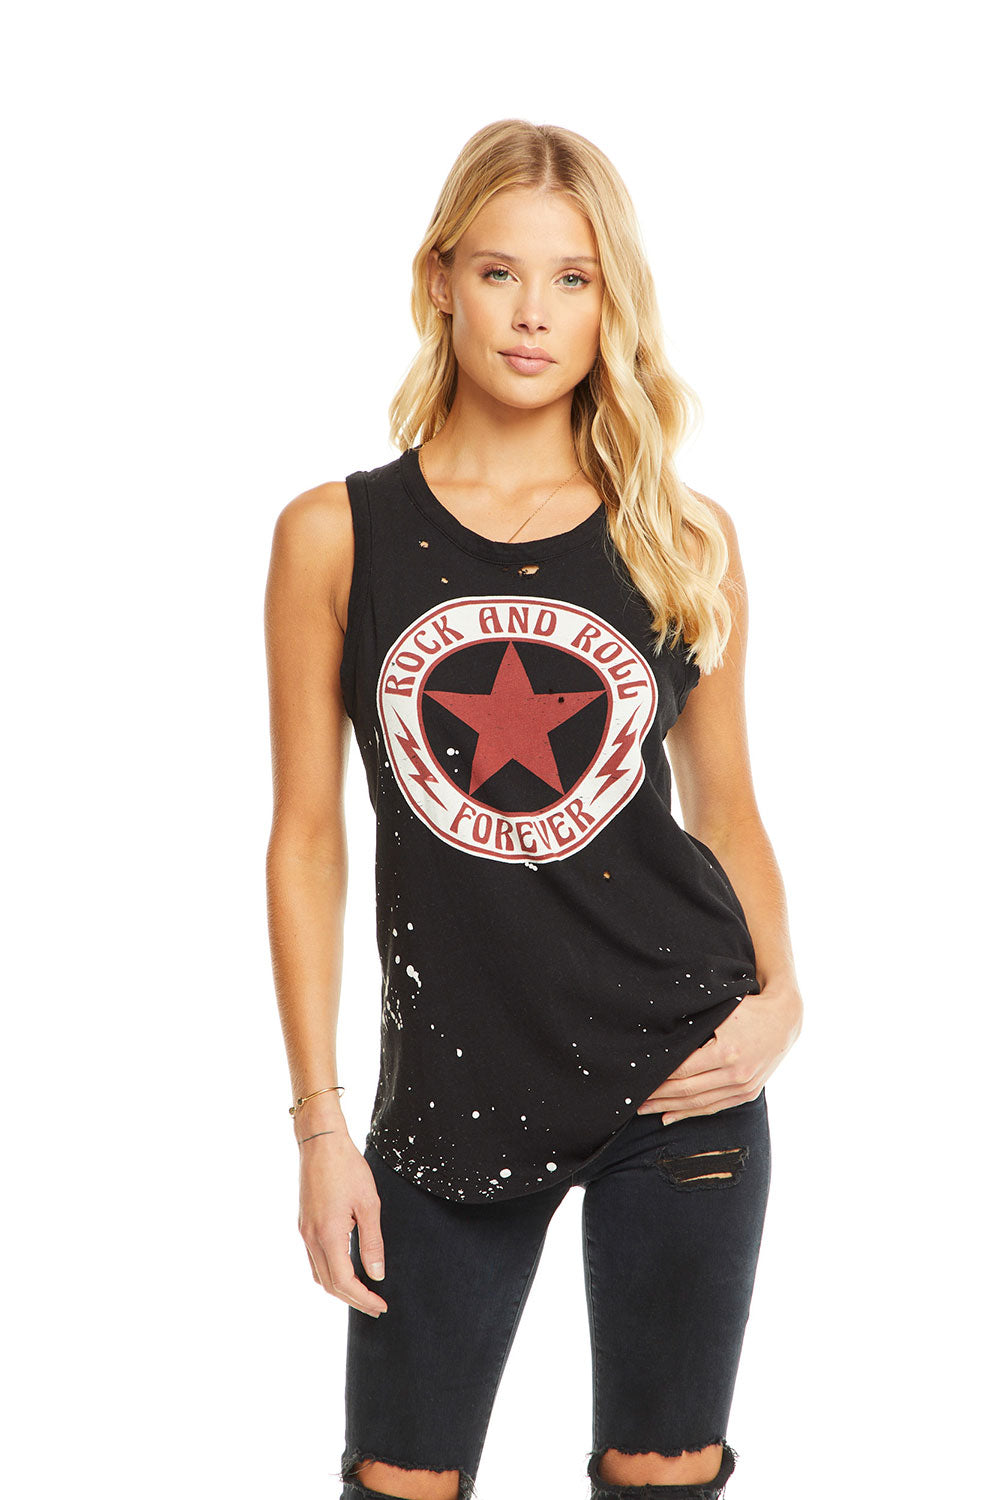 9ce8558d620 Rock Forever, WOMENS, chaserbrand.com,chaser clothing,chaser apparel,chaser